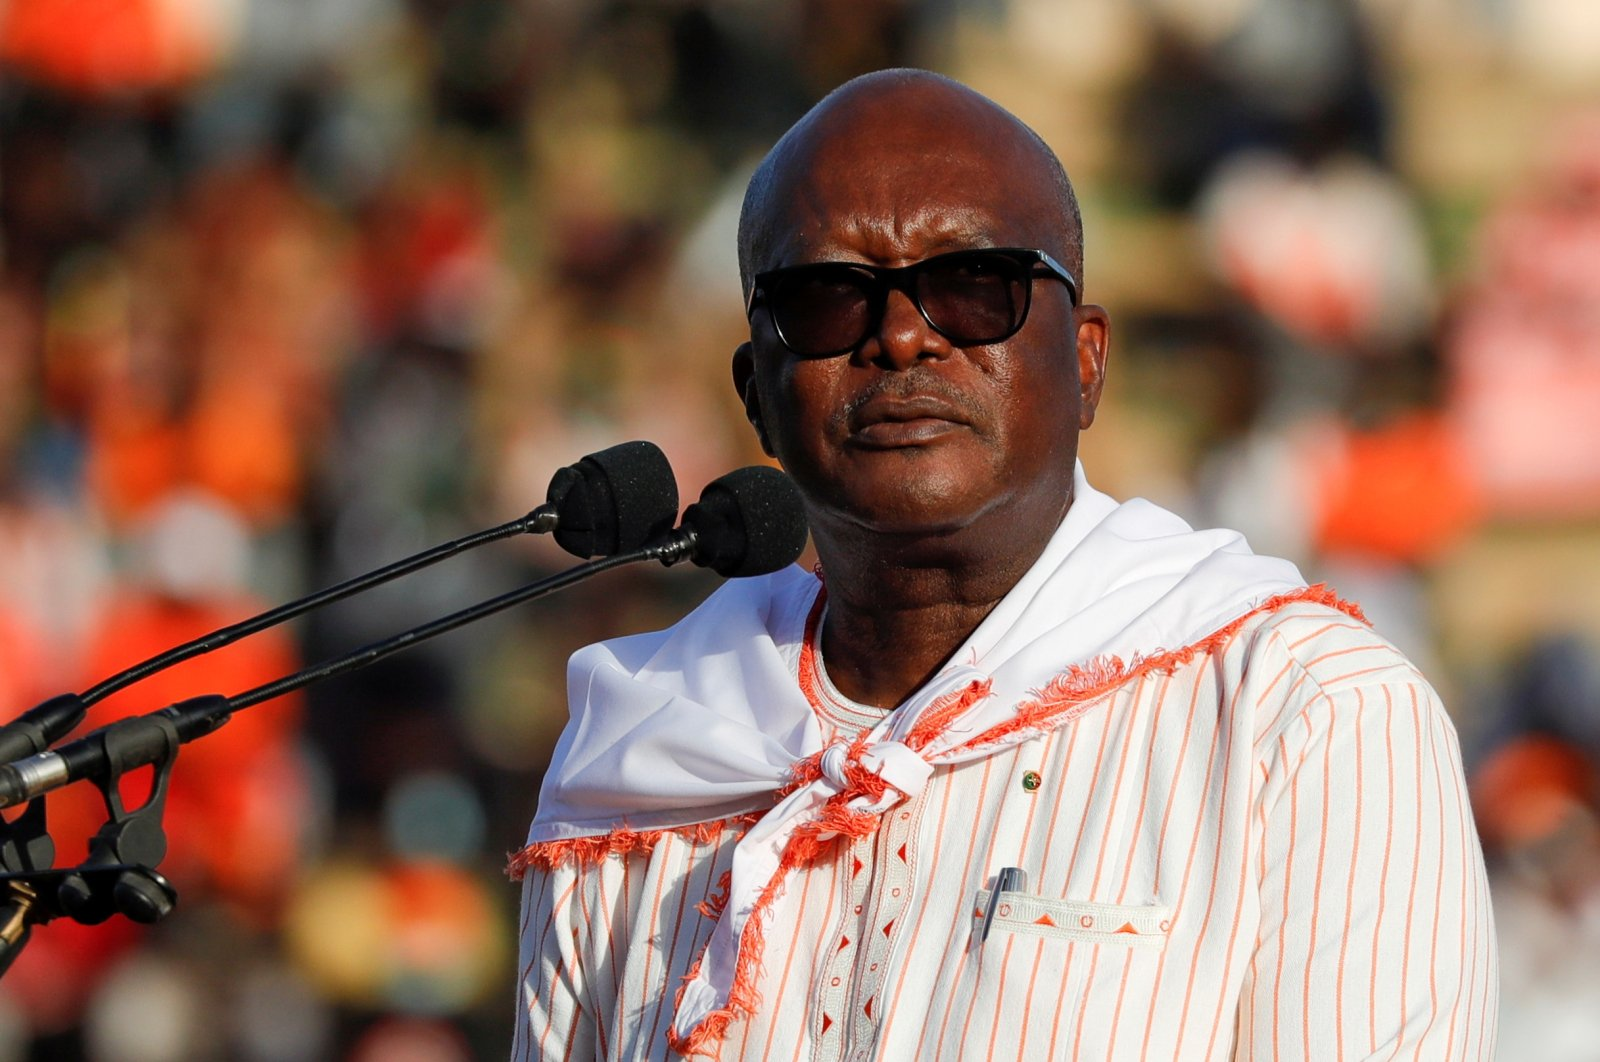 Burkina Faso's President Roch Marc Christian Kabore holds his final campaign rally ahead of the presidential election, in Ouagadougou, Burkina Faso, Nov. 20, 2020. (Reuters Photo)